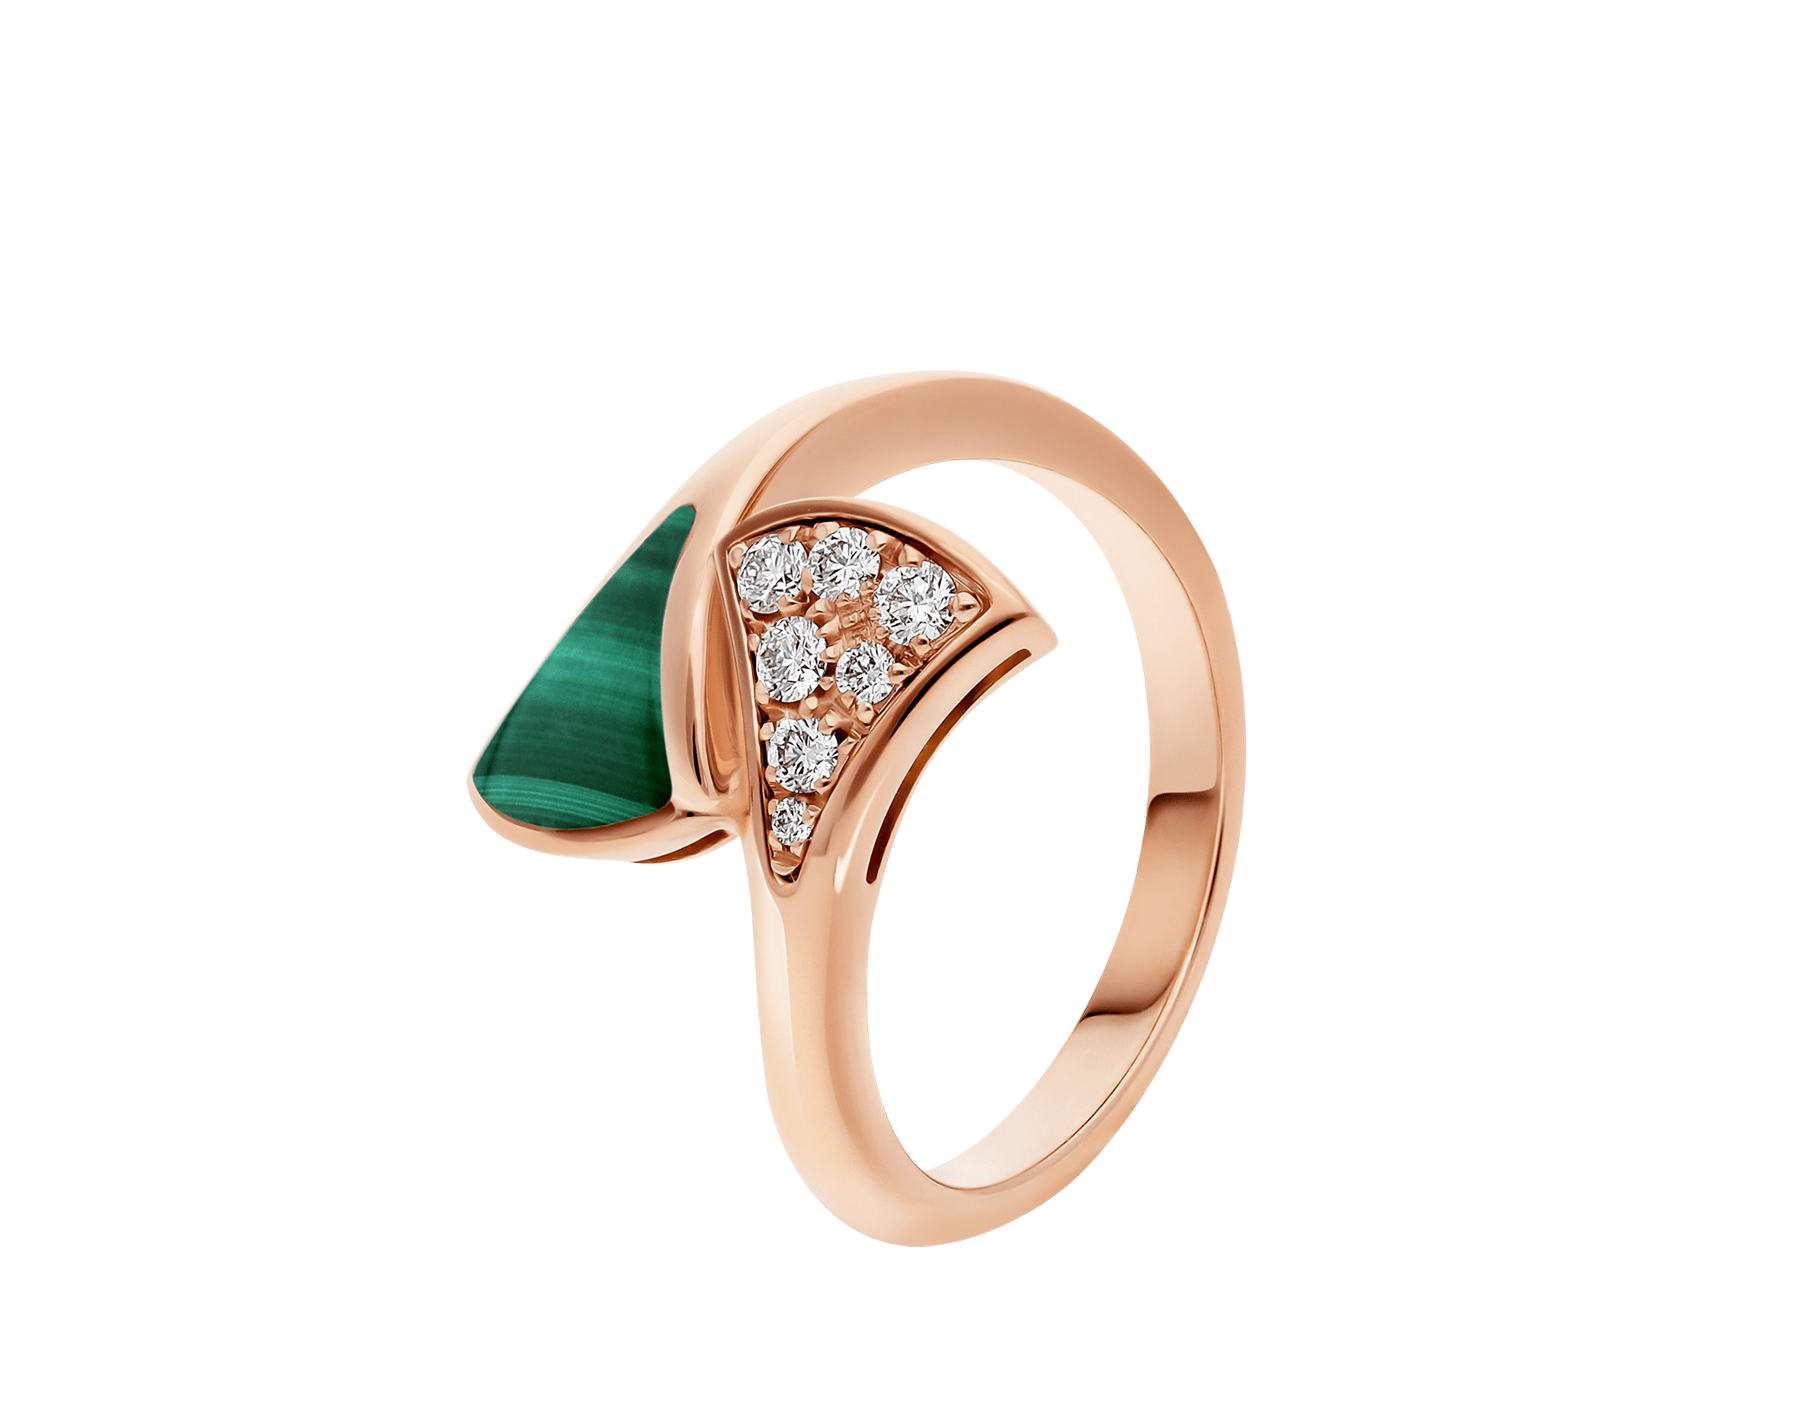 DIVAS' DREAM Ring aus 18 Karat Roségold mit Malachit-Element und Diamant-Pavé AN858646 image 1